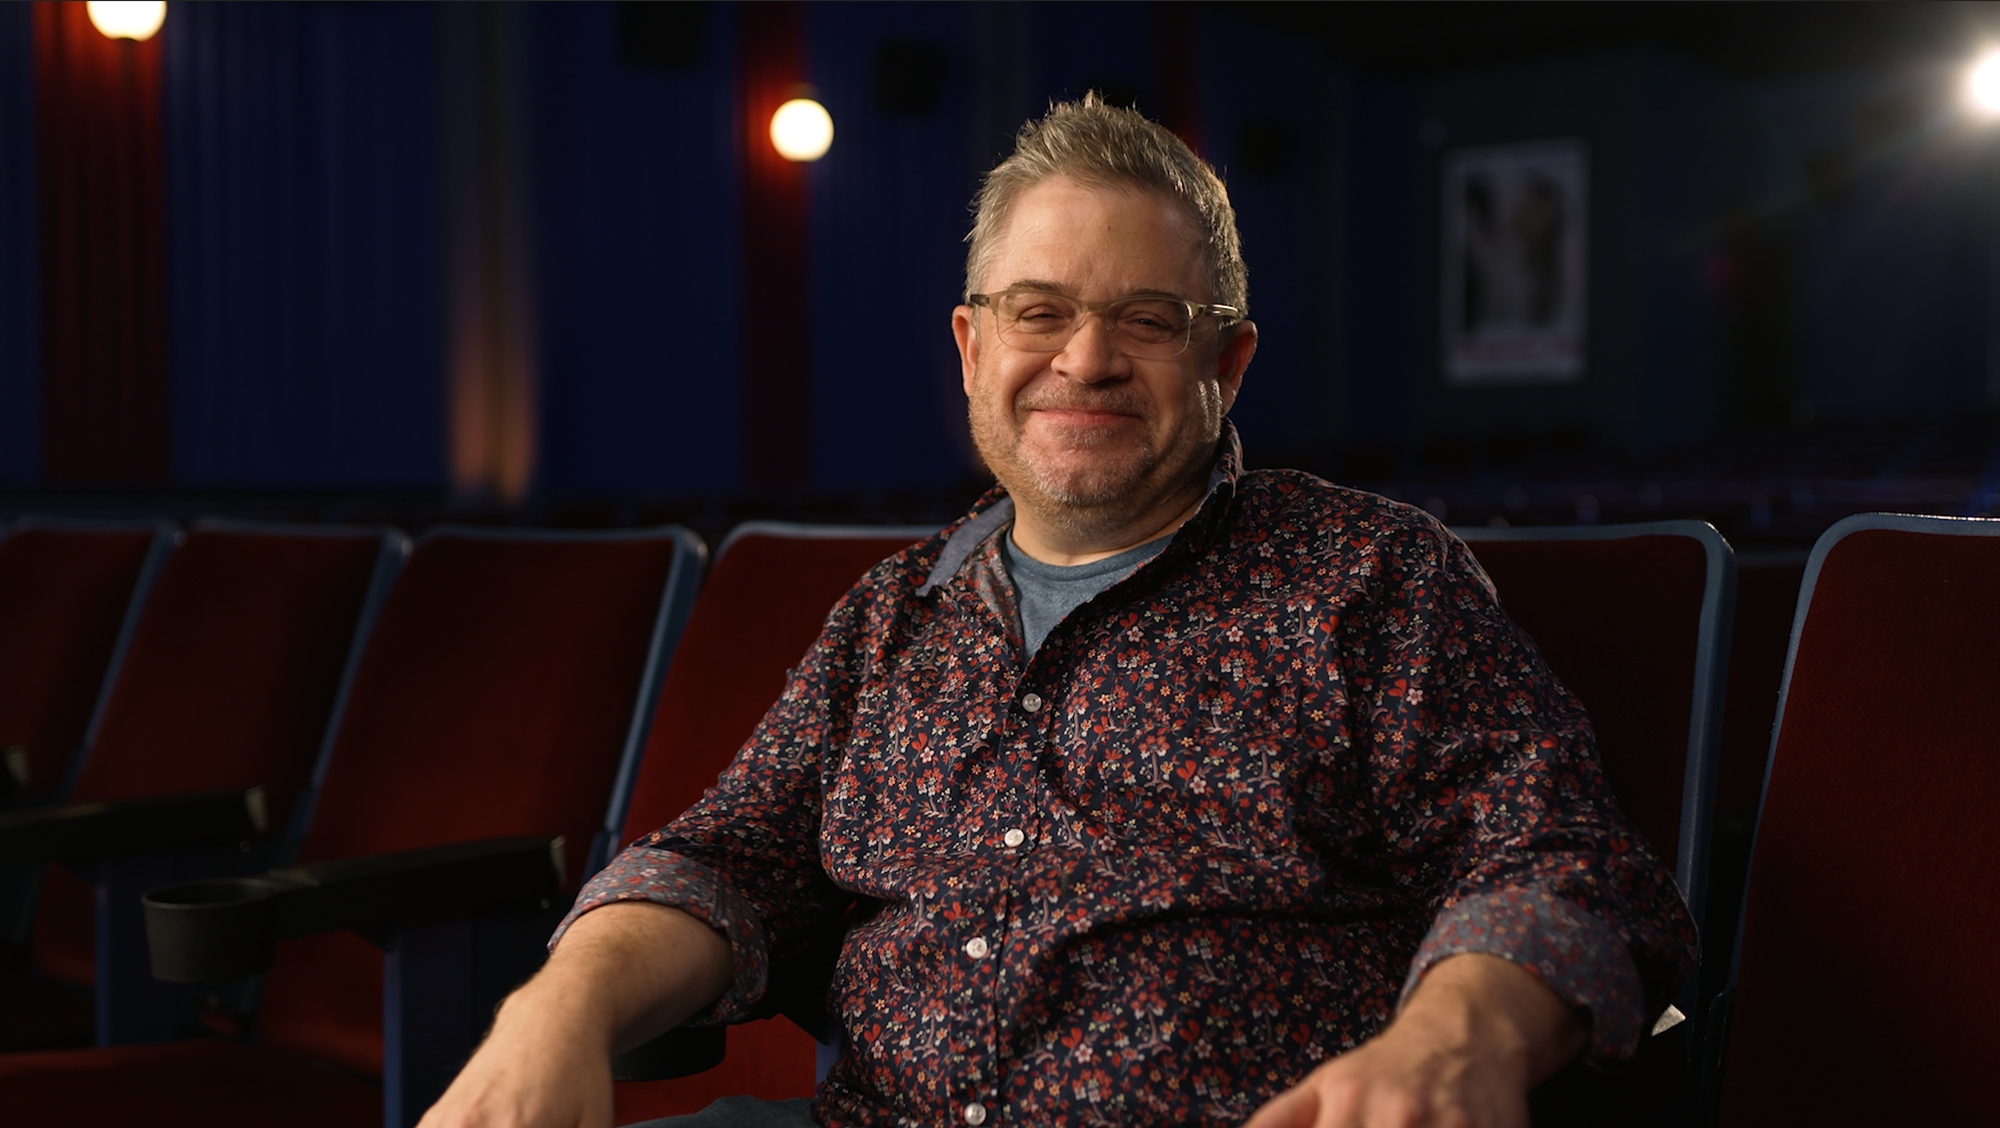 photograph of Patton Oswalt sitting in a movie theater alone